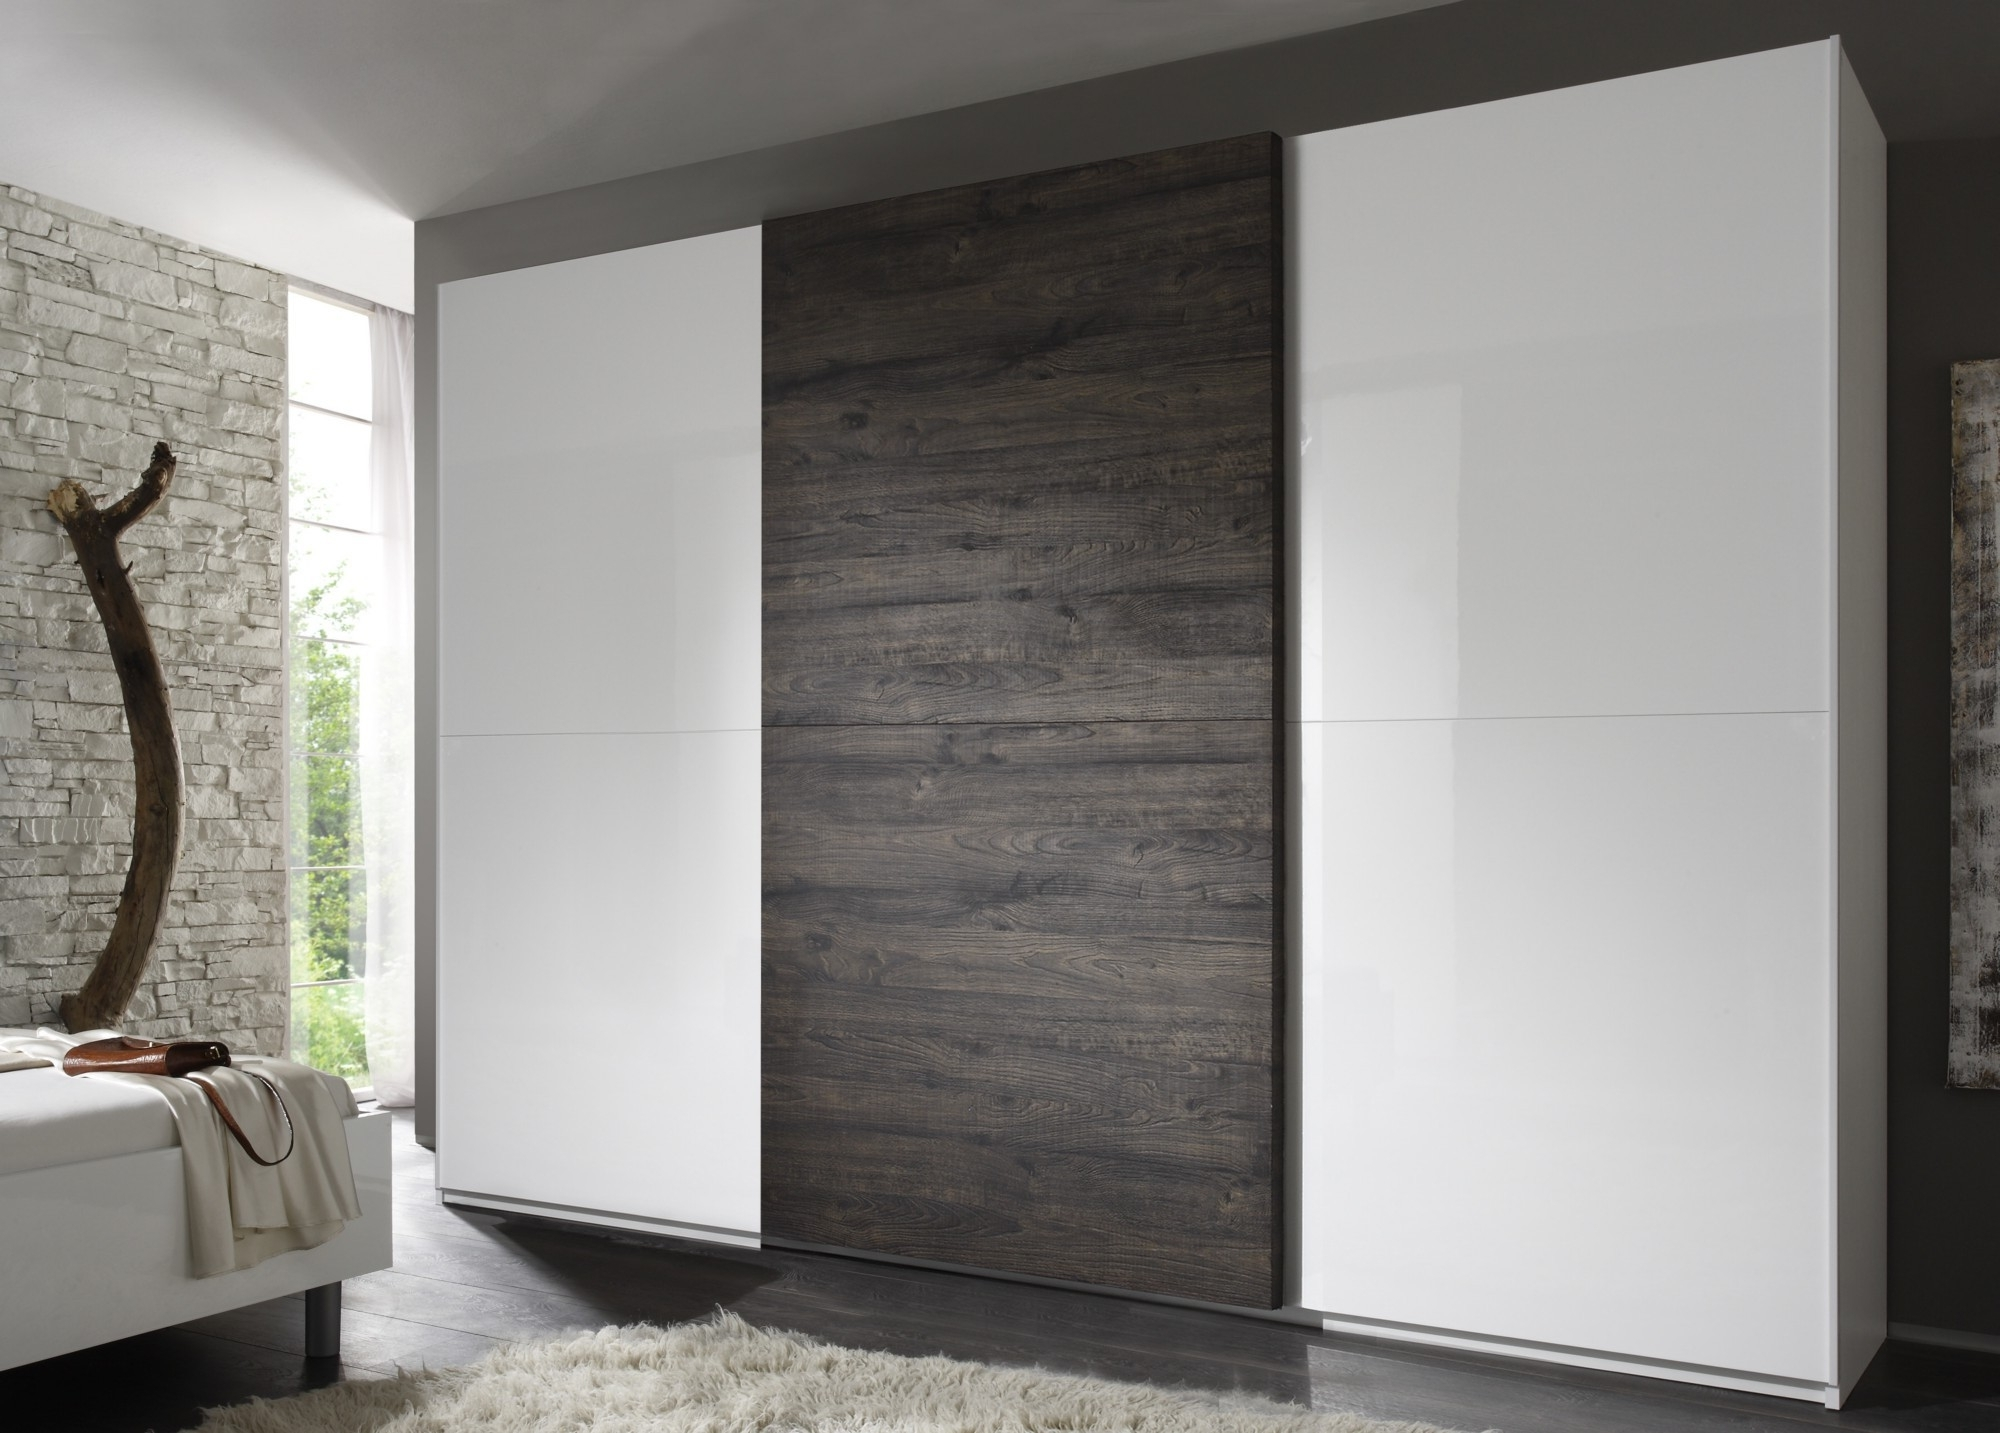 Preferred 3 Door White Wardrobes Intended For Tambura Sliding 3 Doors Wardrobe, White + Wenge Buy Online At Best (View 12 of 15)